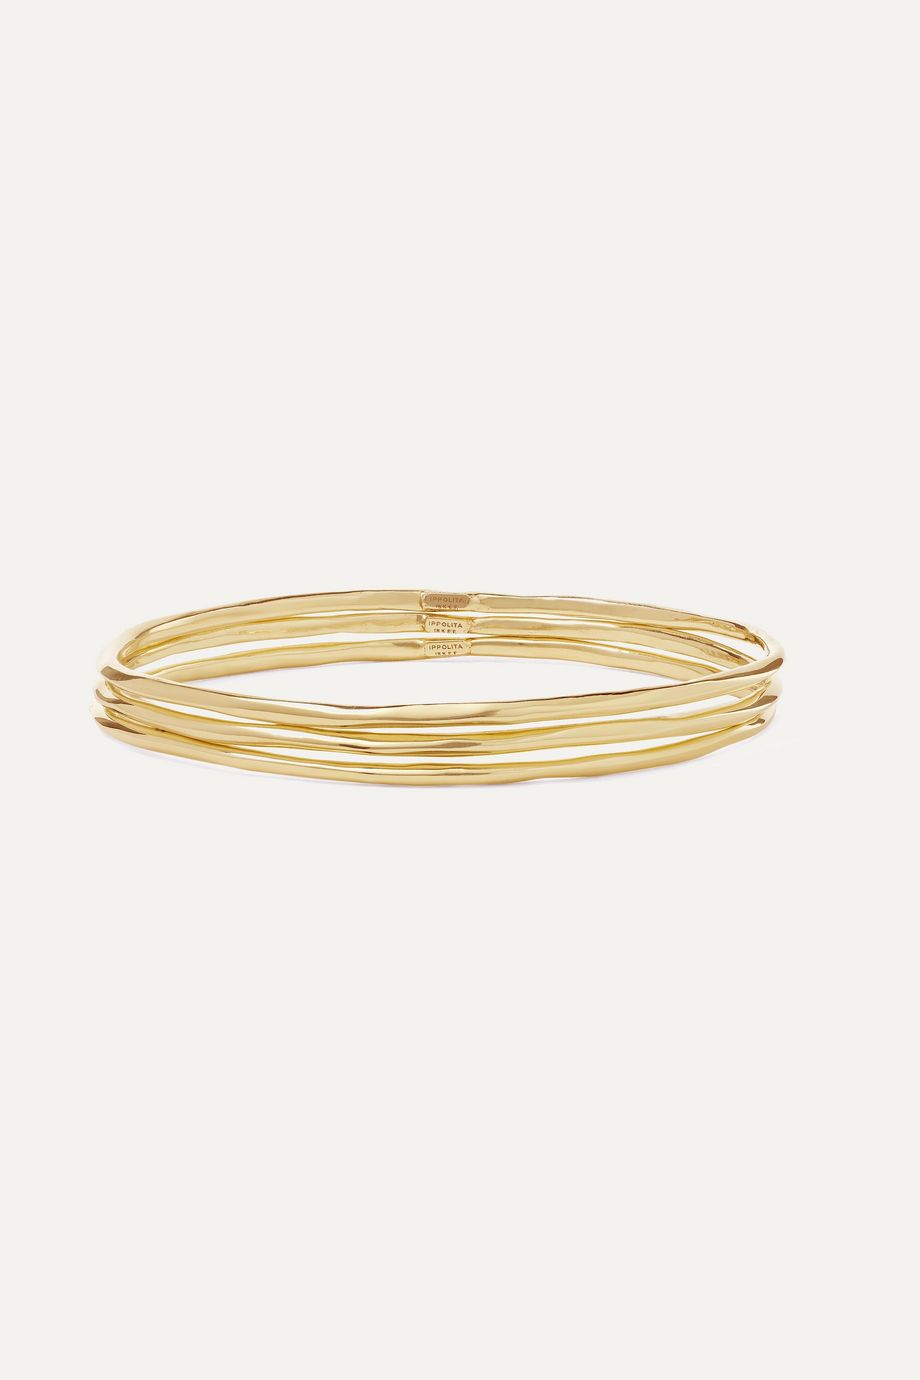 Ippolita Classico set of three 18-karat gold bangles